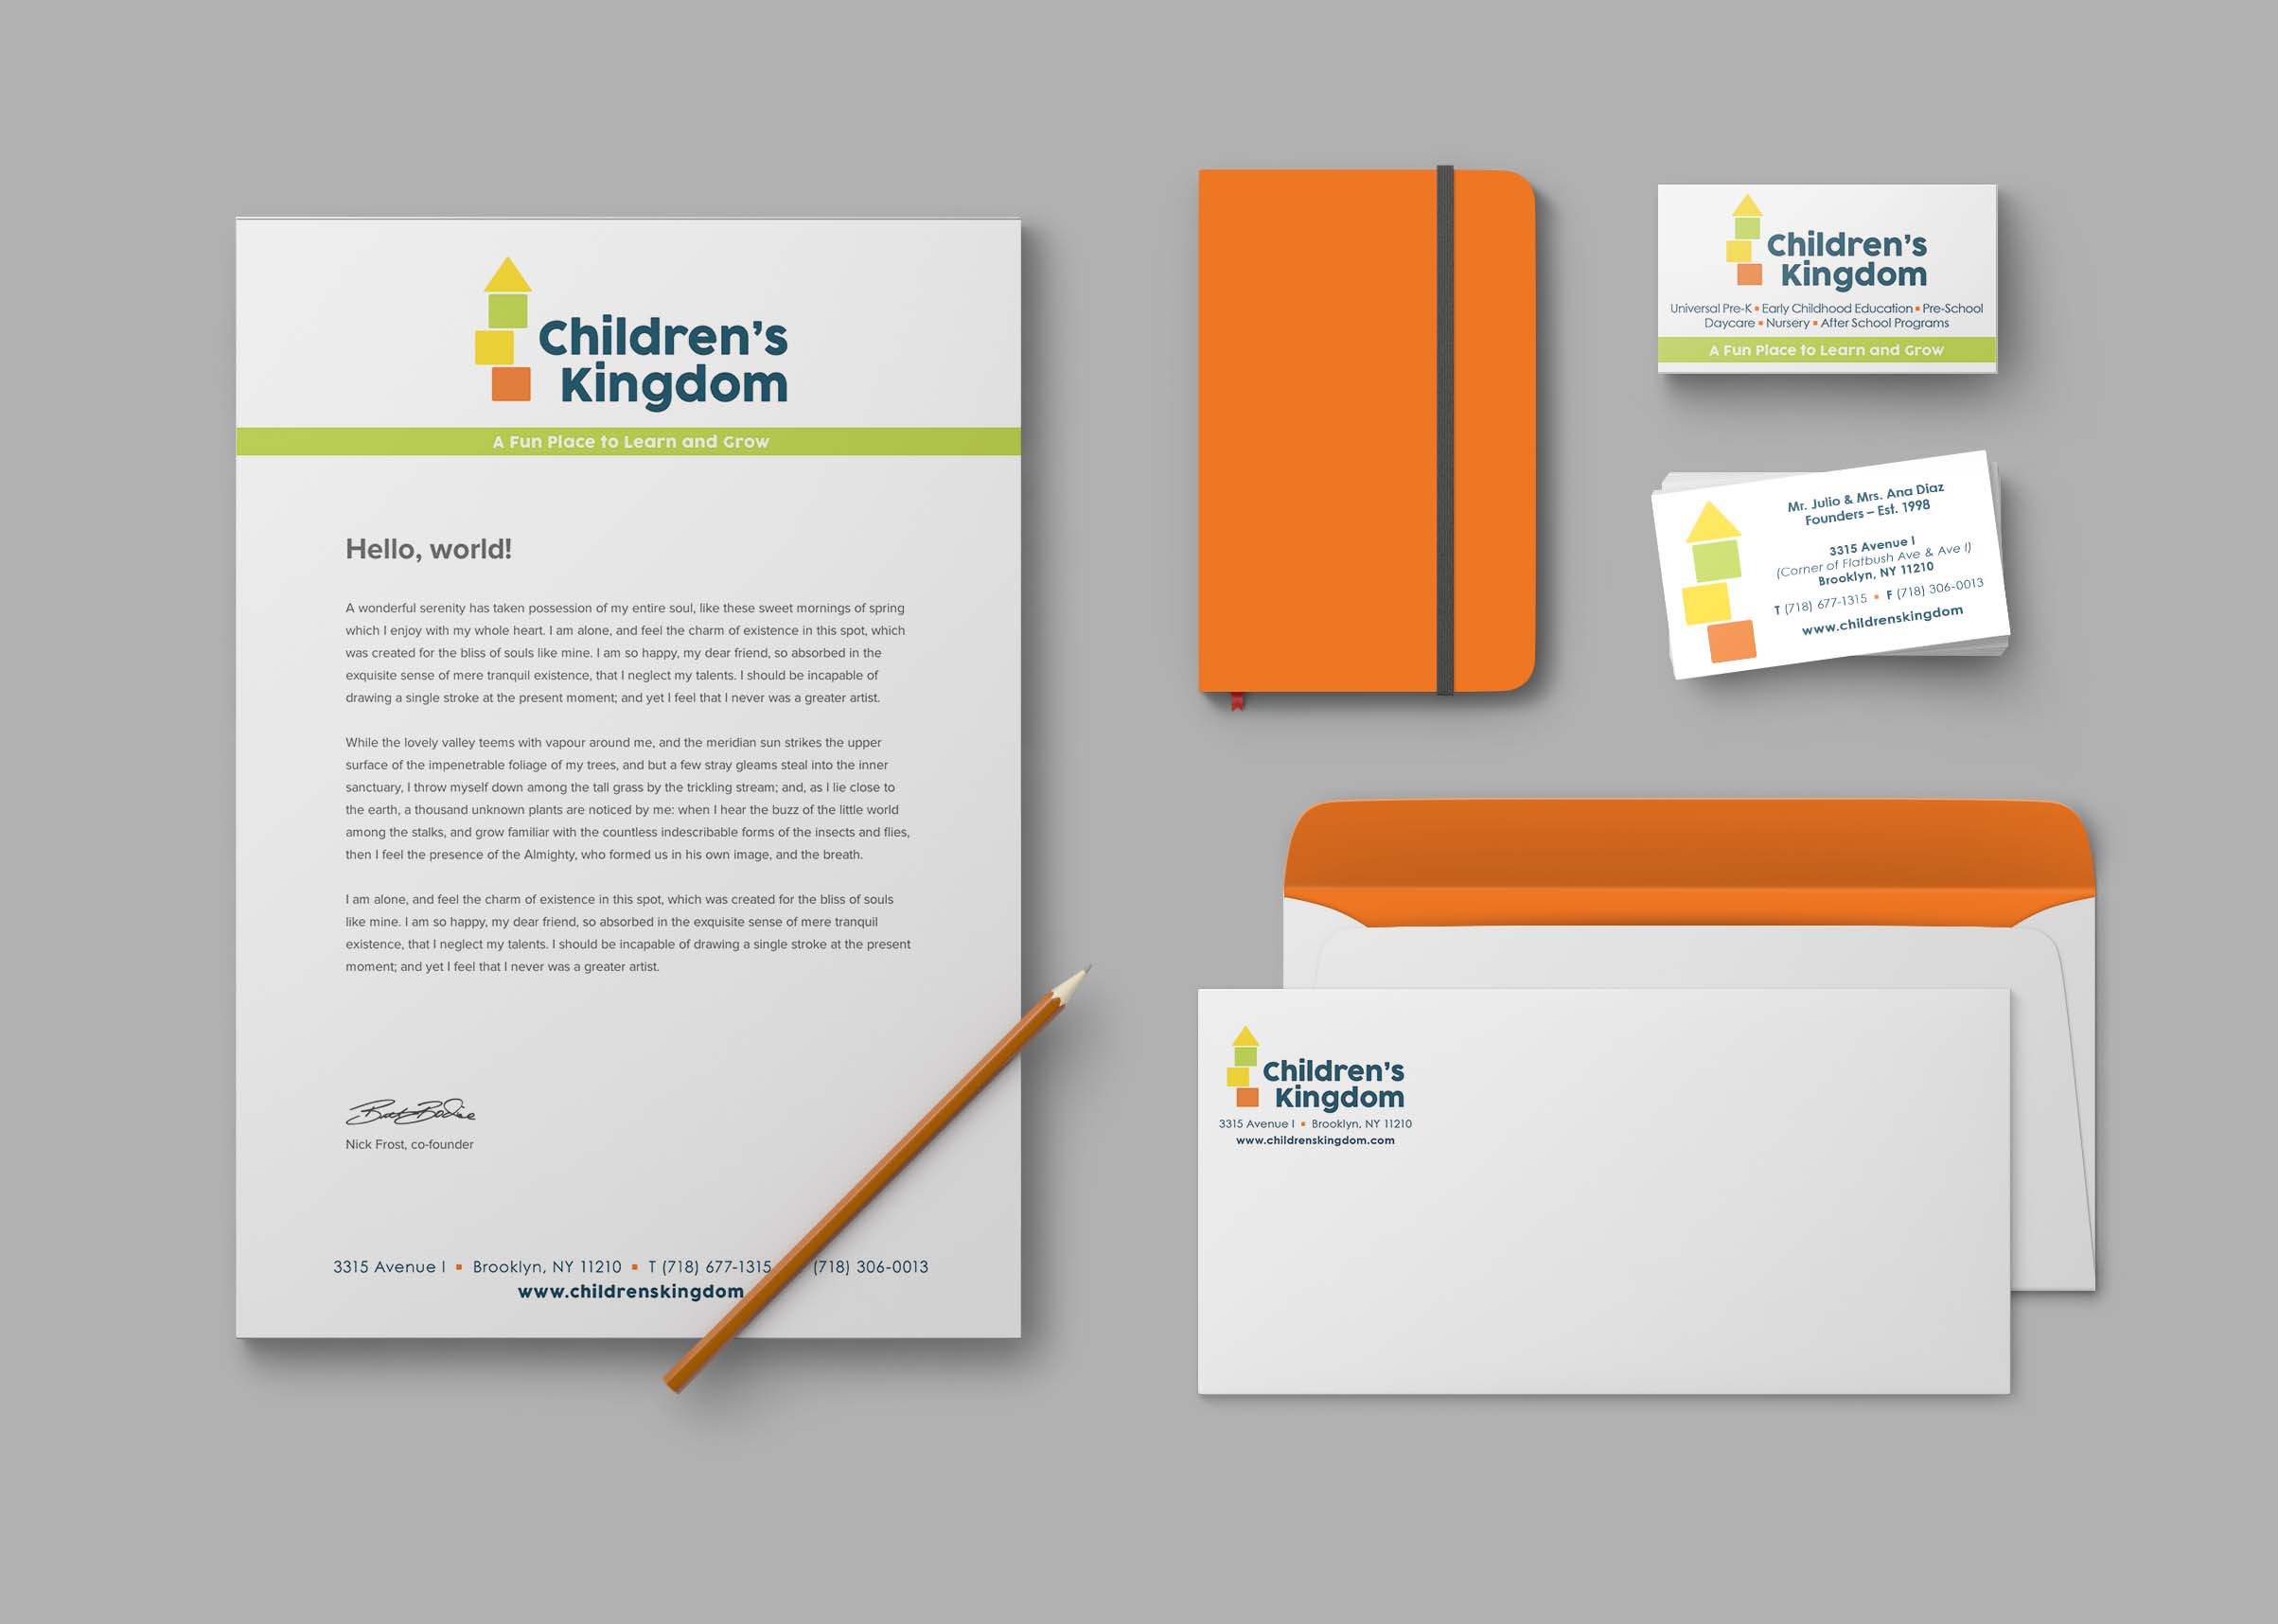 childrens-kingdom-stationery-mockup-72px